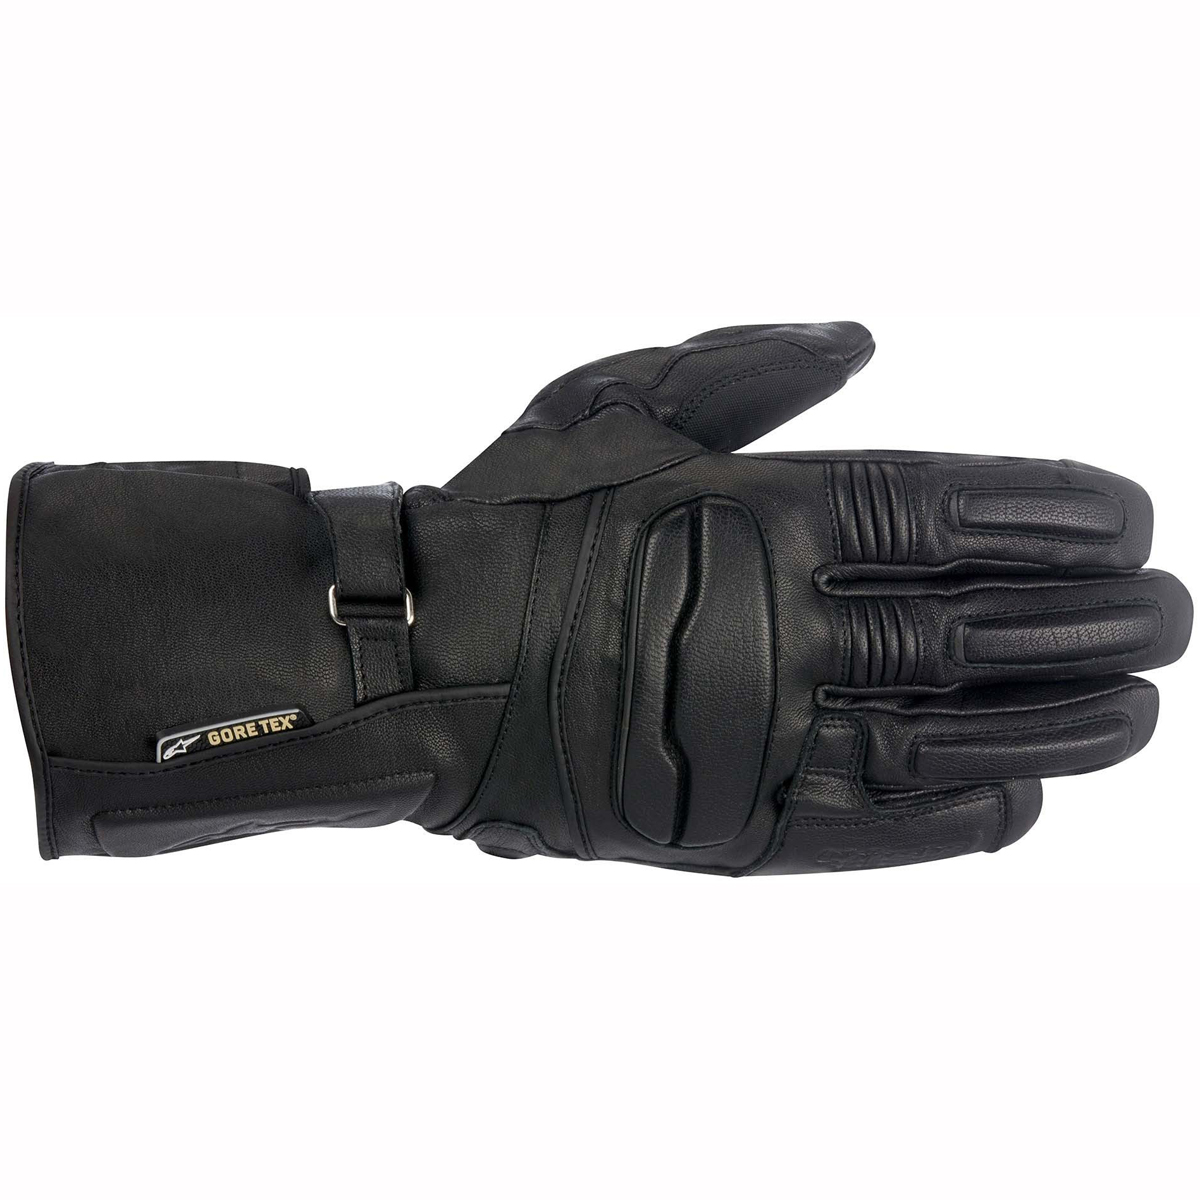 Motorcycle Gloves Europe - The alpinestars wr 1 gore tex gloves